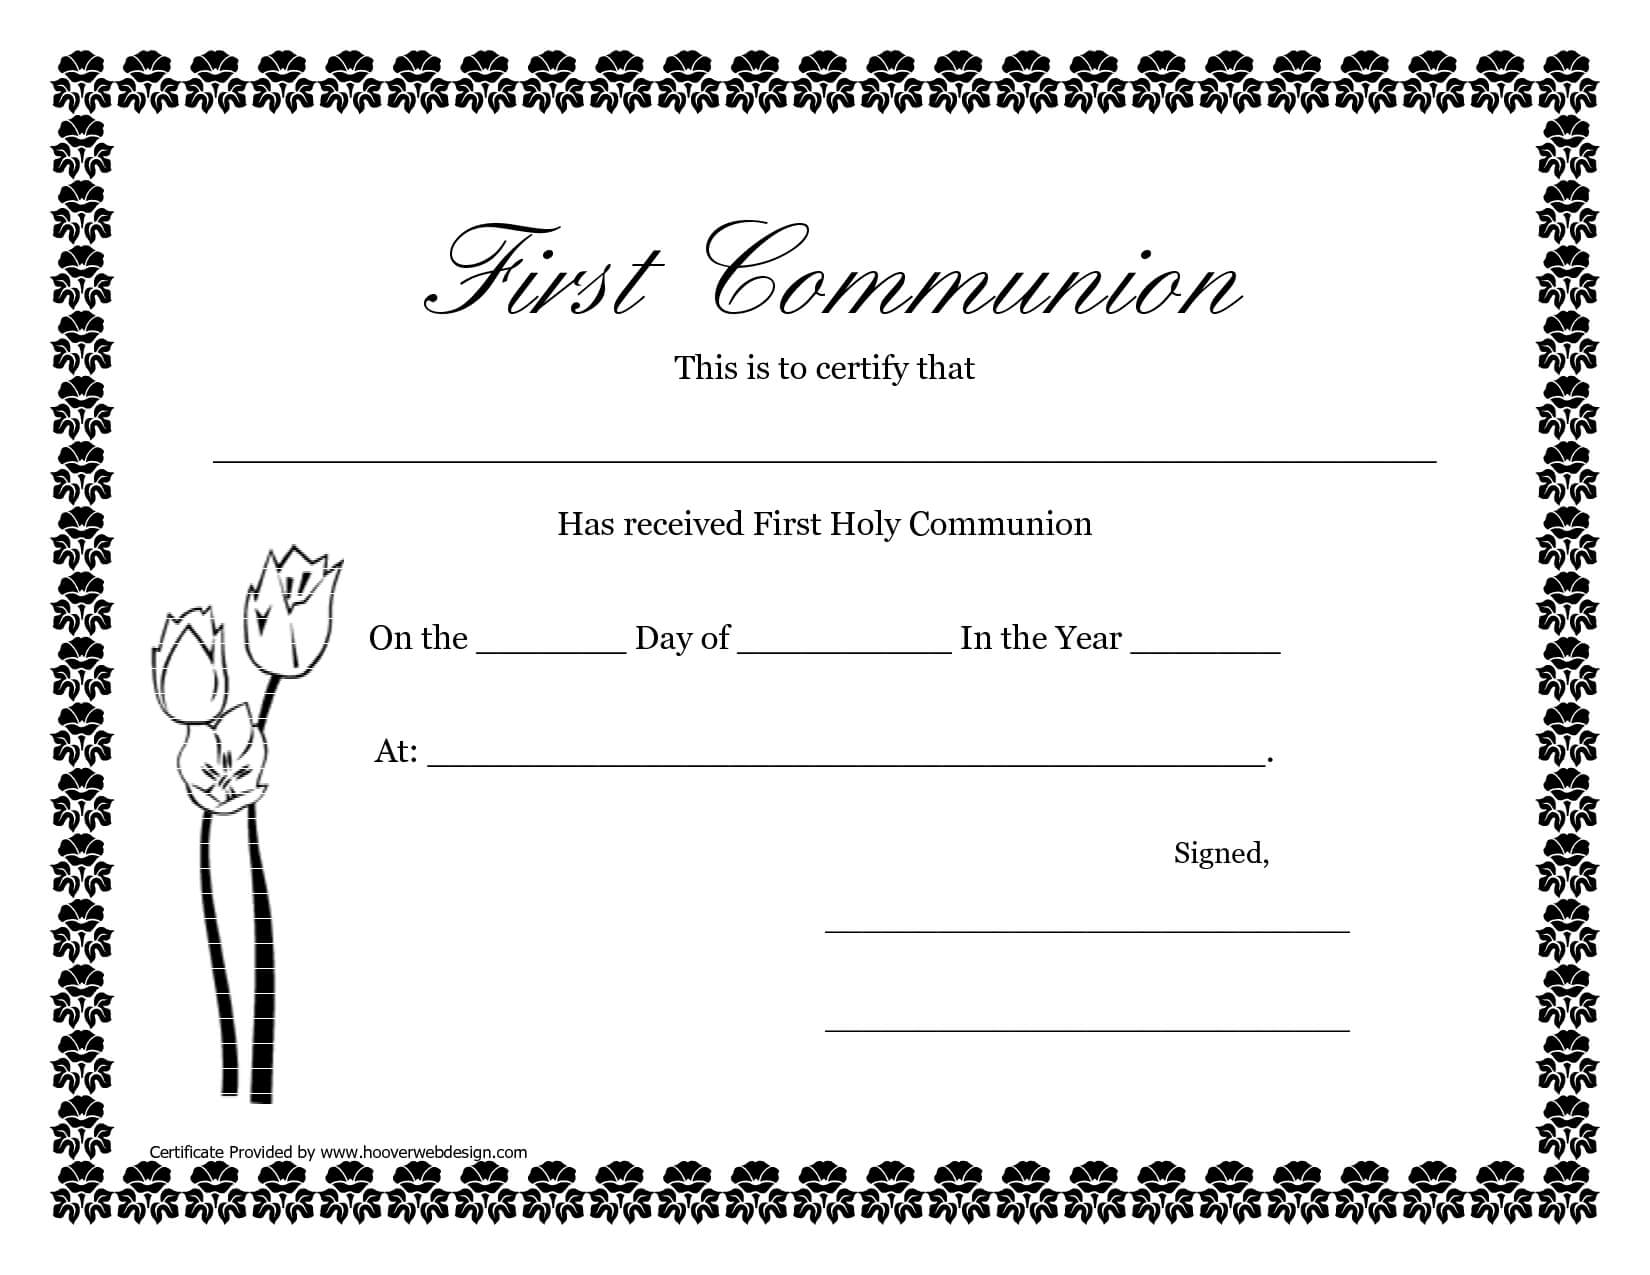 First Communion Banner Templates | Printable First Communion Throughout Free Printable First Communion Banner Templates